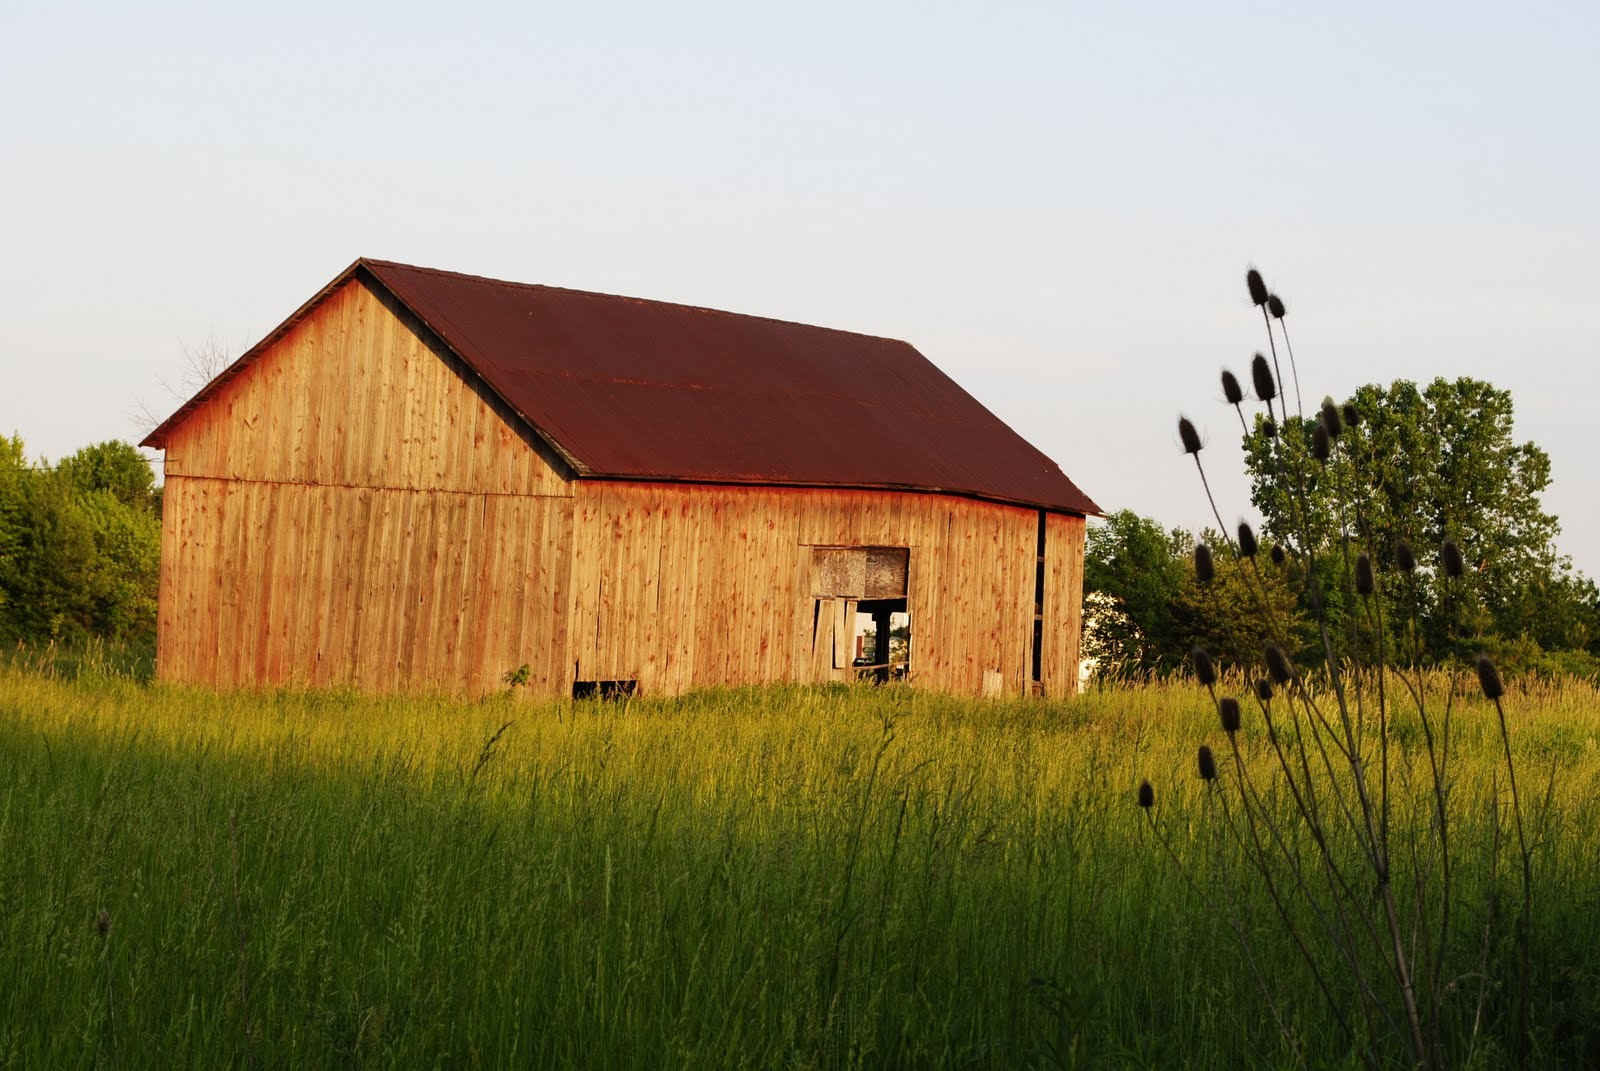 A wooden barn sitting in a field of tall grass